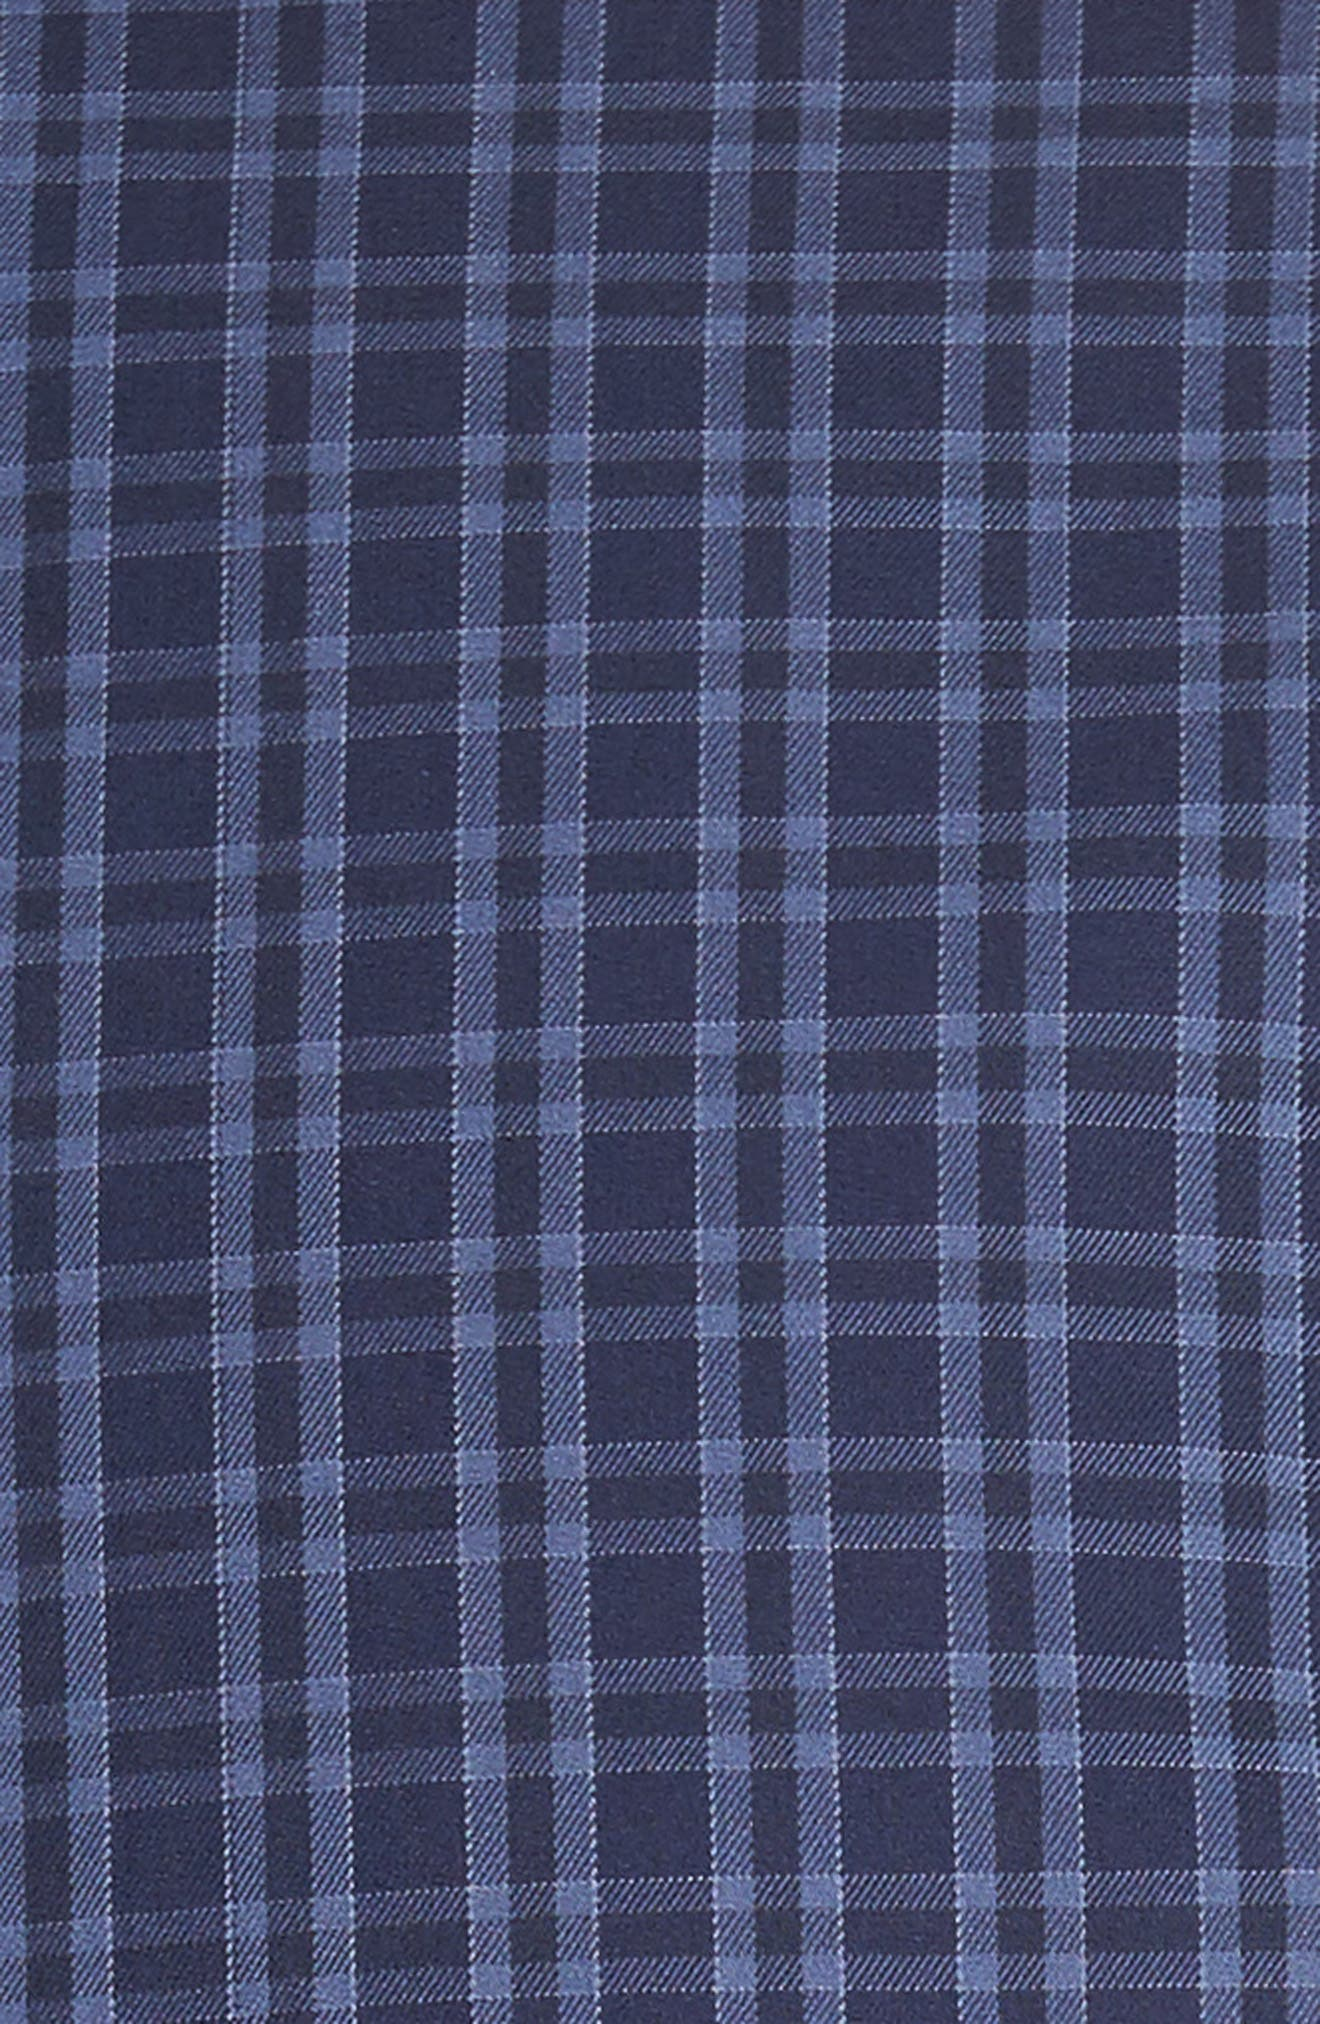 Autumn Check Regular Fit Sport Shirt,                             Alternate thumbnail 5, color,                             Seaboard Navy